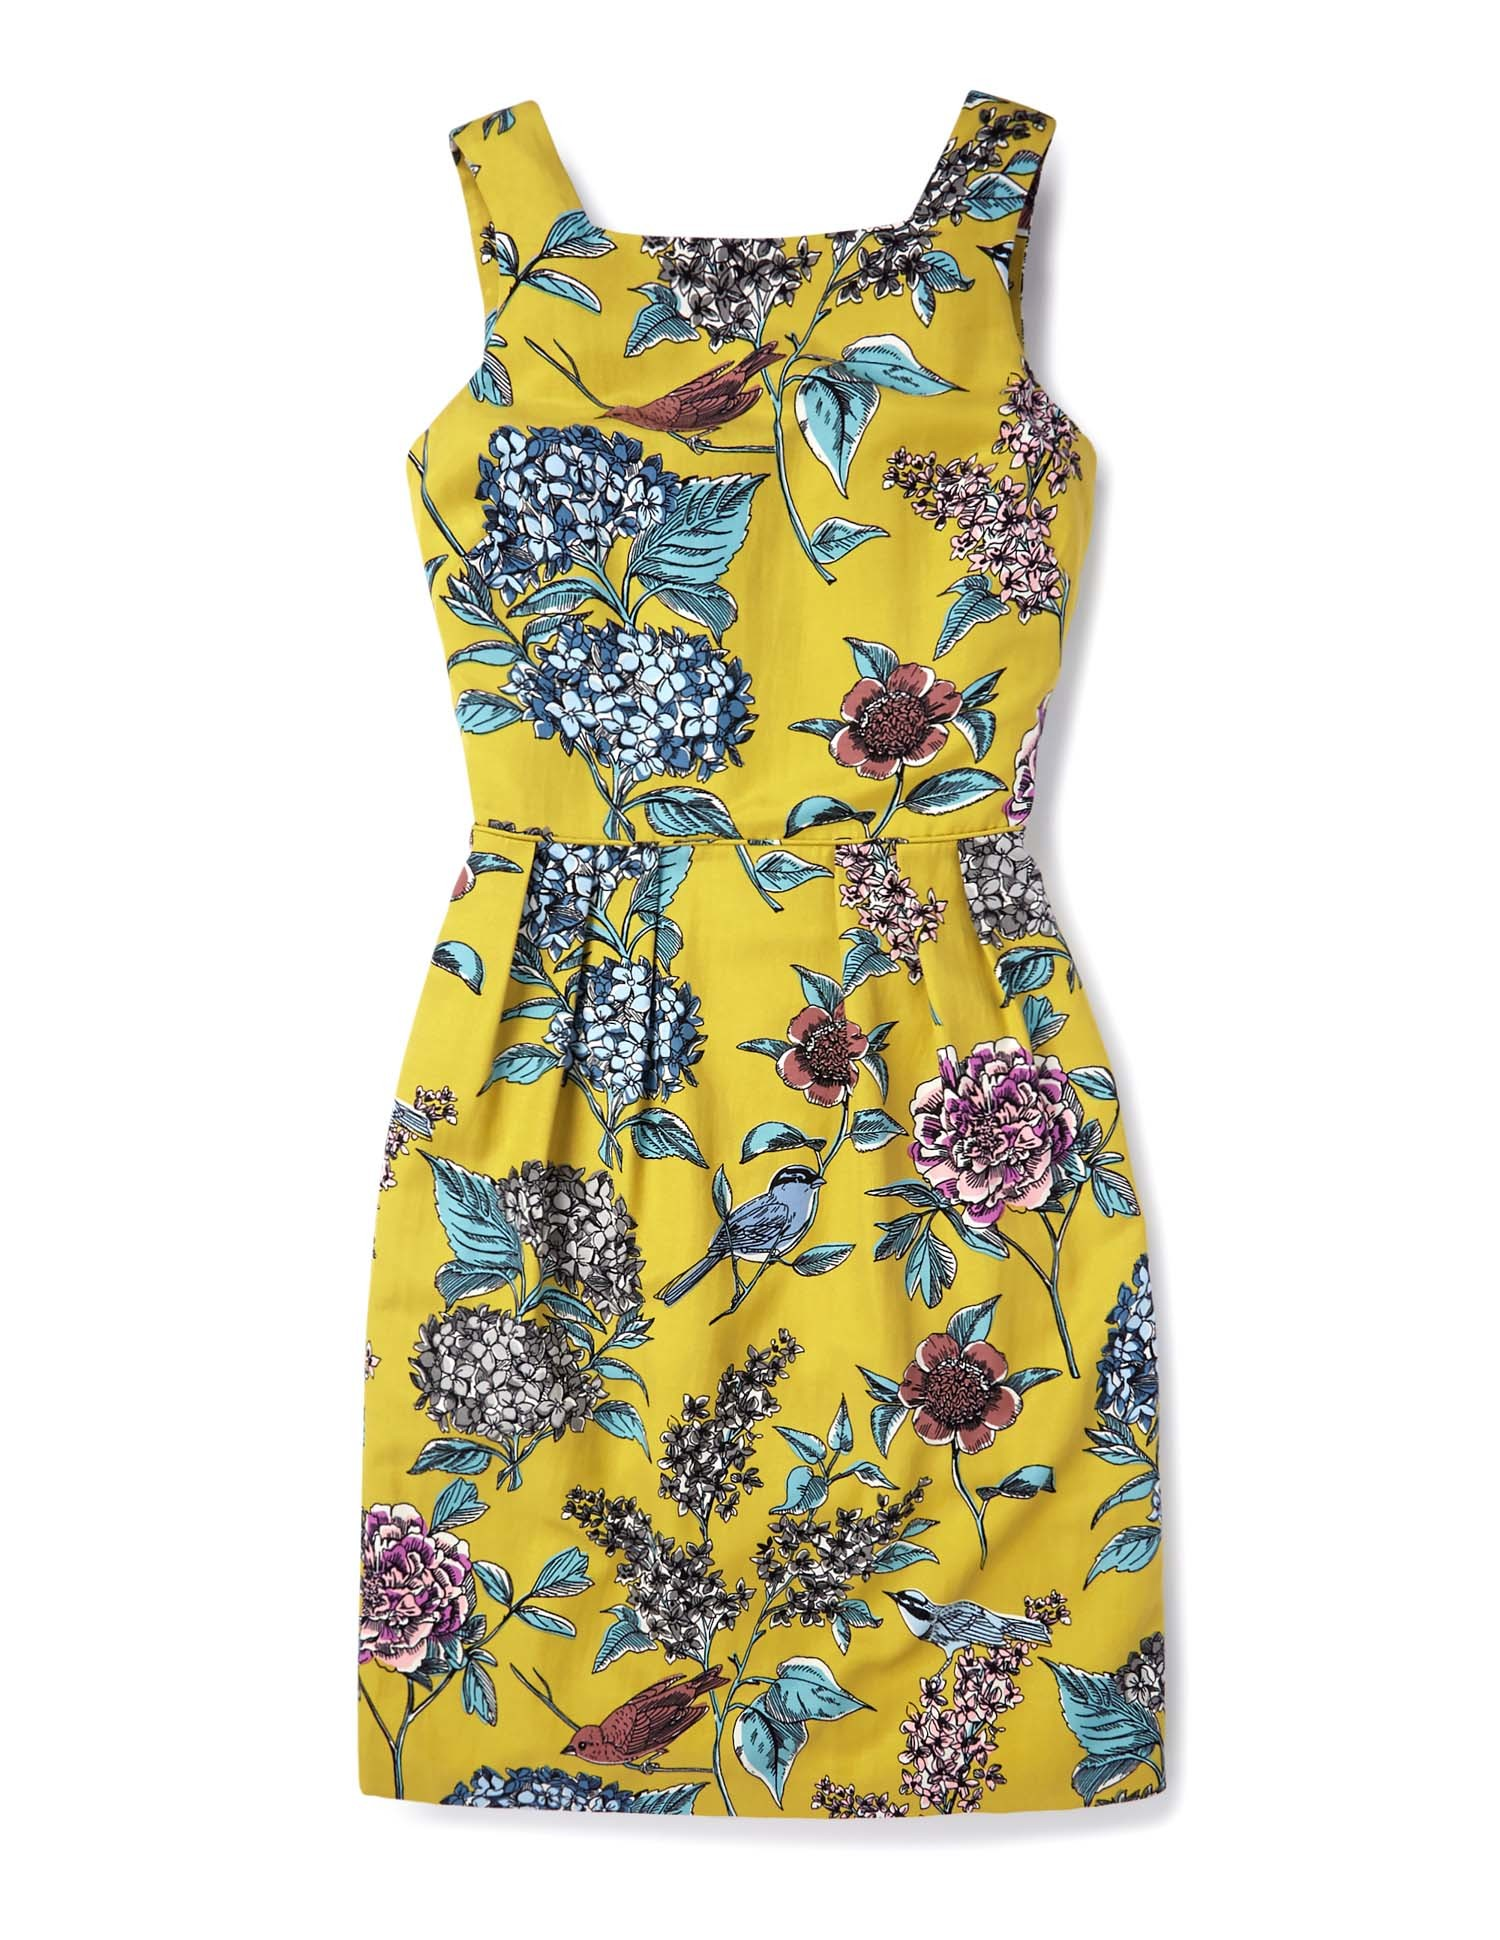 Kiera dress in sulphur botanical, £139, Boden